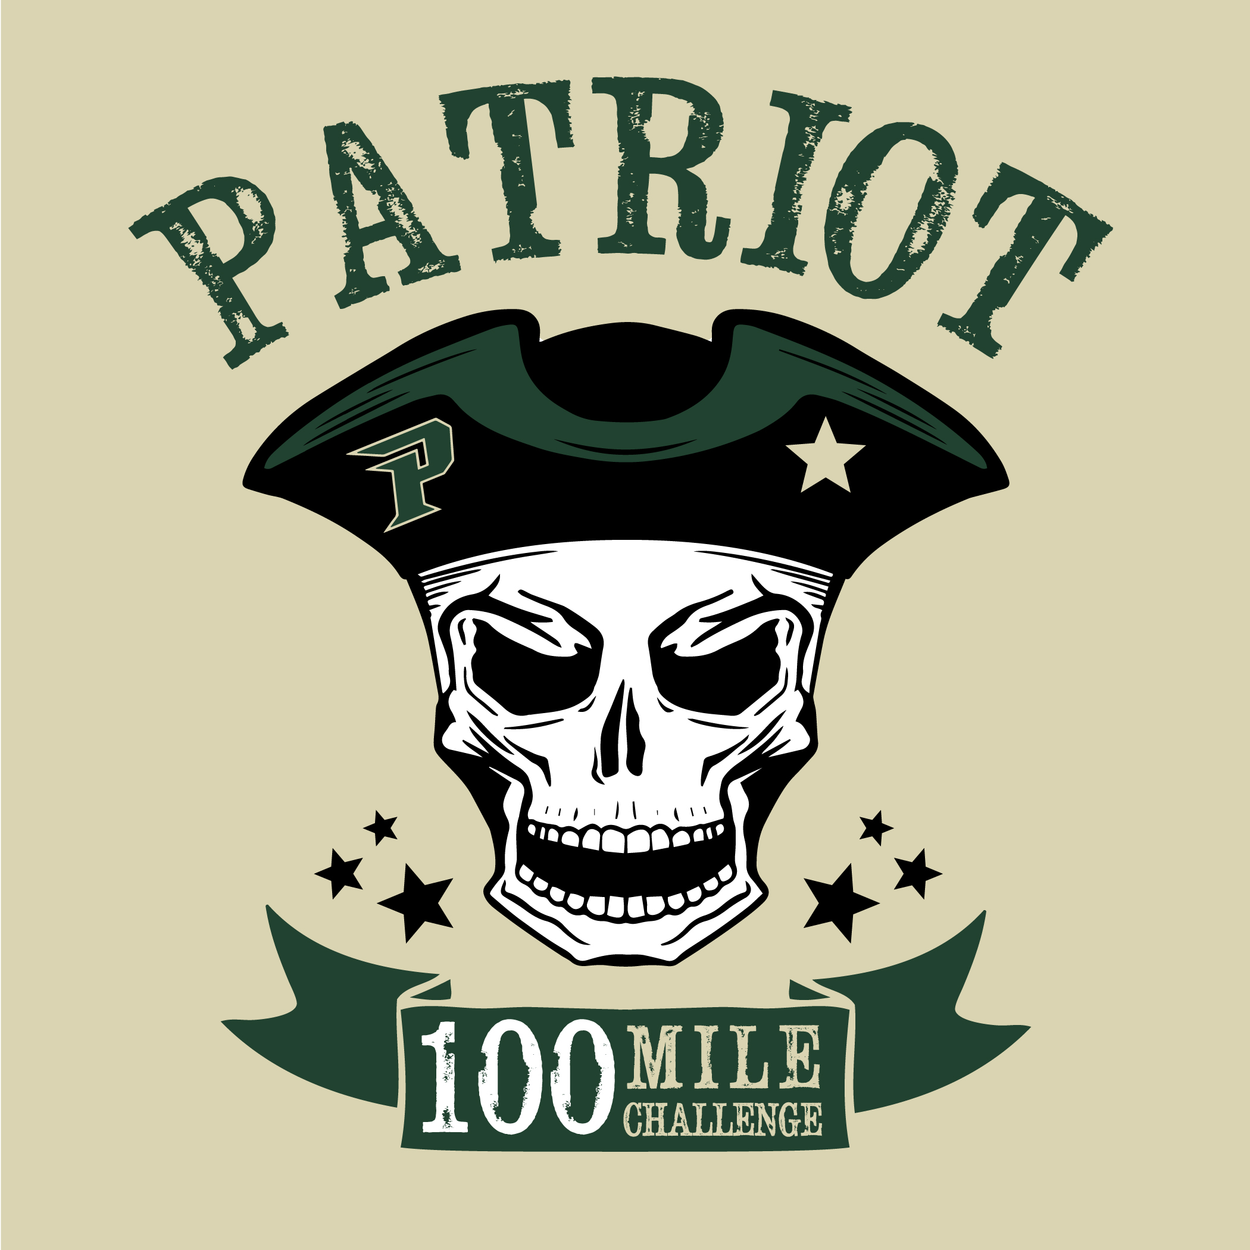 100 Mile Patriot Challenge